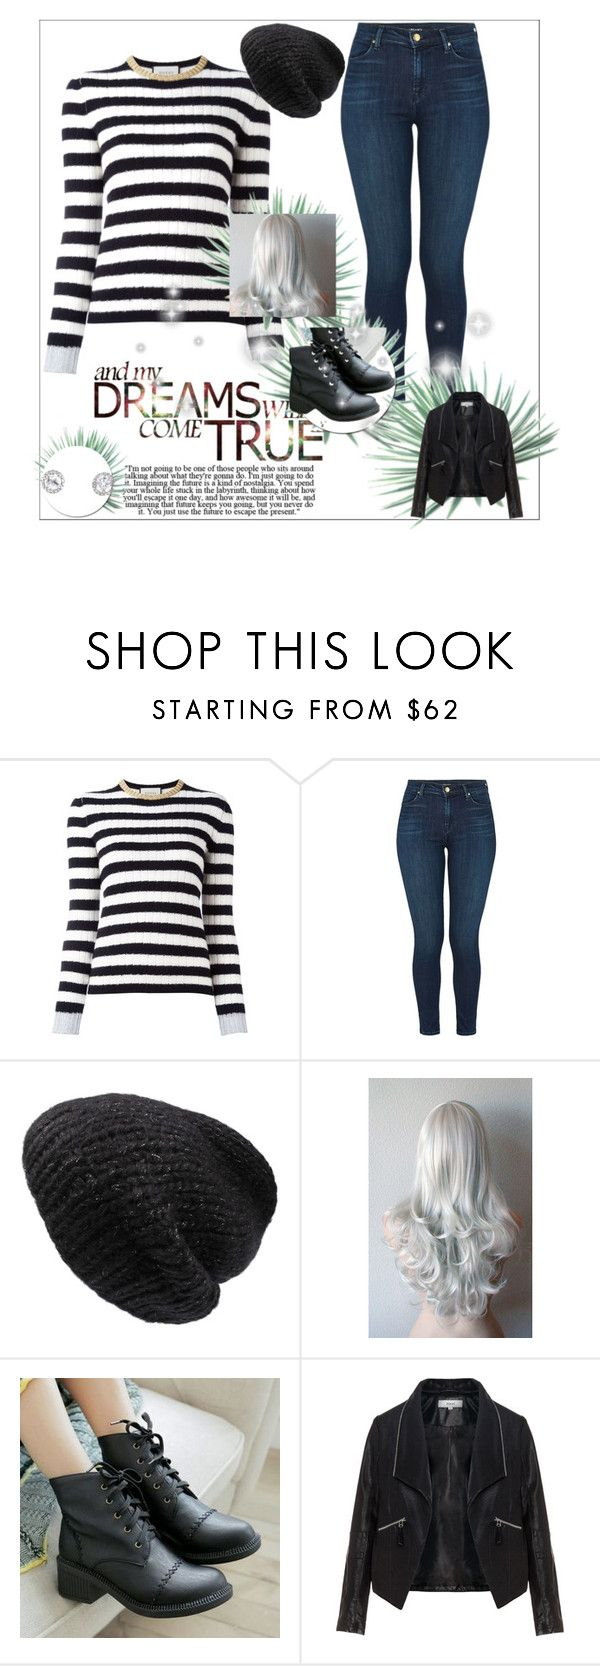 """""""Naomi"""" by melrionwolfblood ❤ liked on Polyvore featuring Gucci, J Brand, Mes Demoiselles..., Pangmama, Zizzi and Agave"""